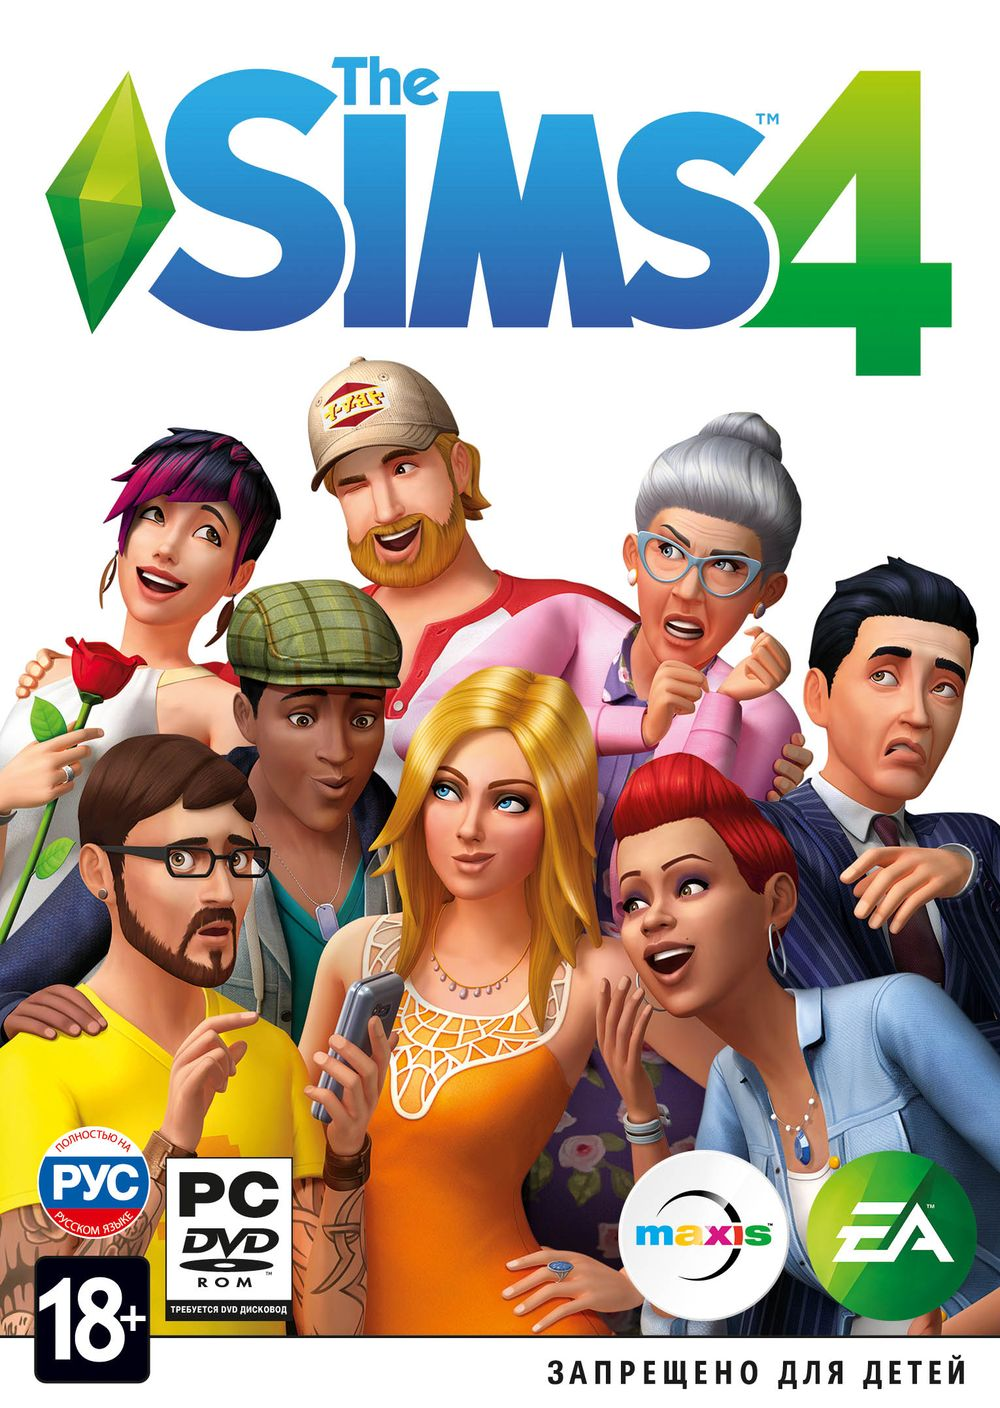 The Sims 4: Deluxe Edition [v 1.65.70.1020 (x64) / 1.65.70.1020 (x32) + DLC]